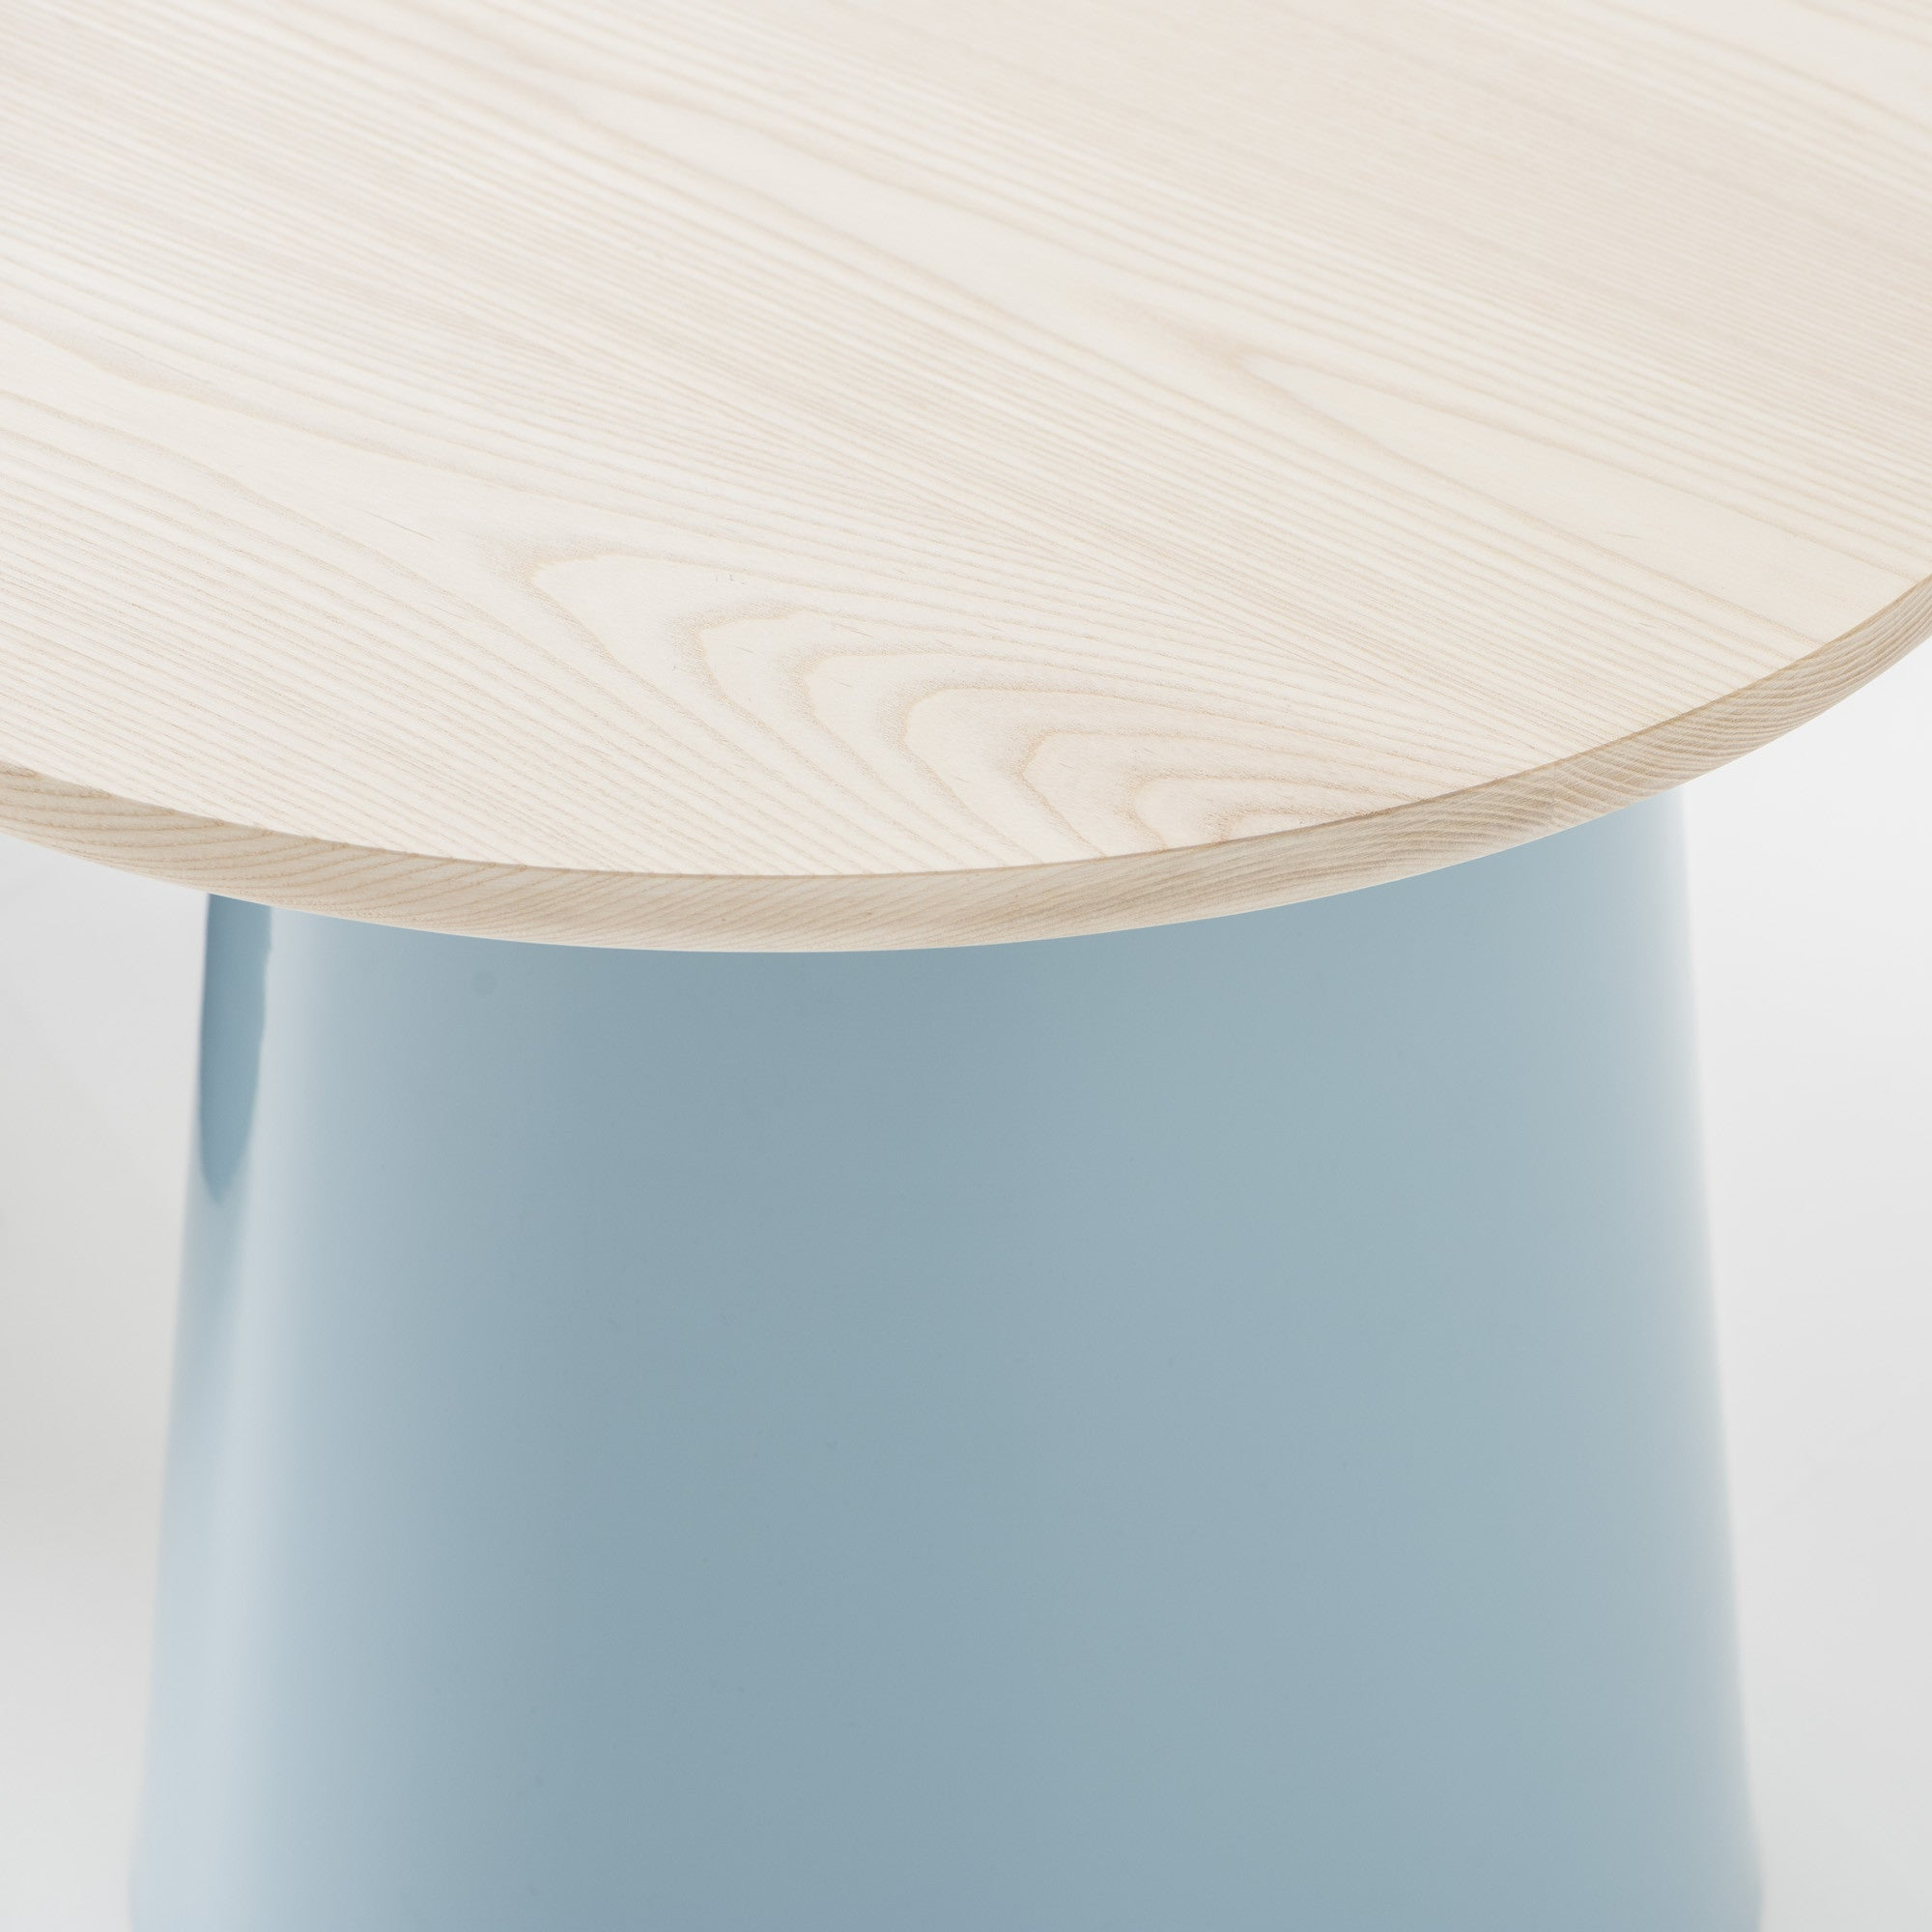 Double Thimble Table by Dowel Jones